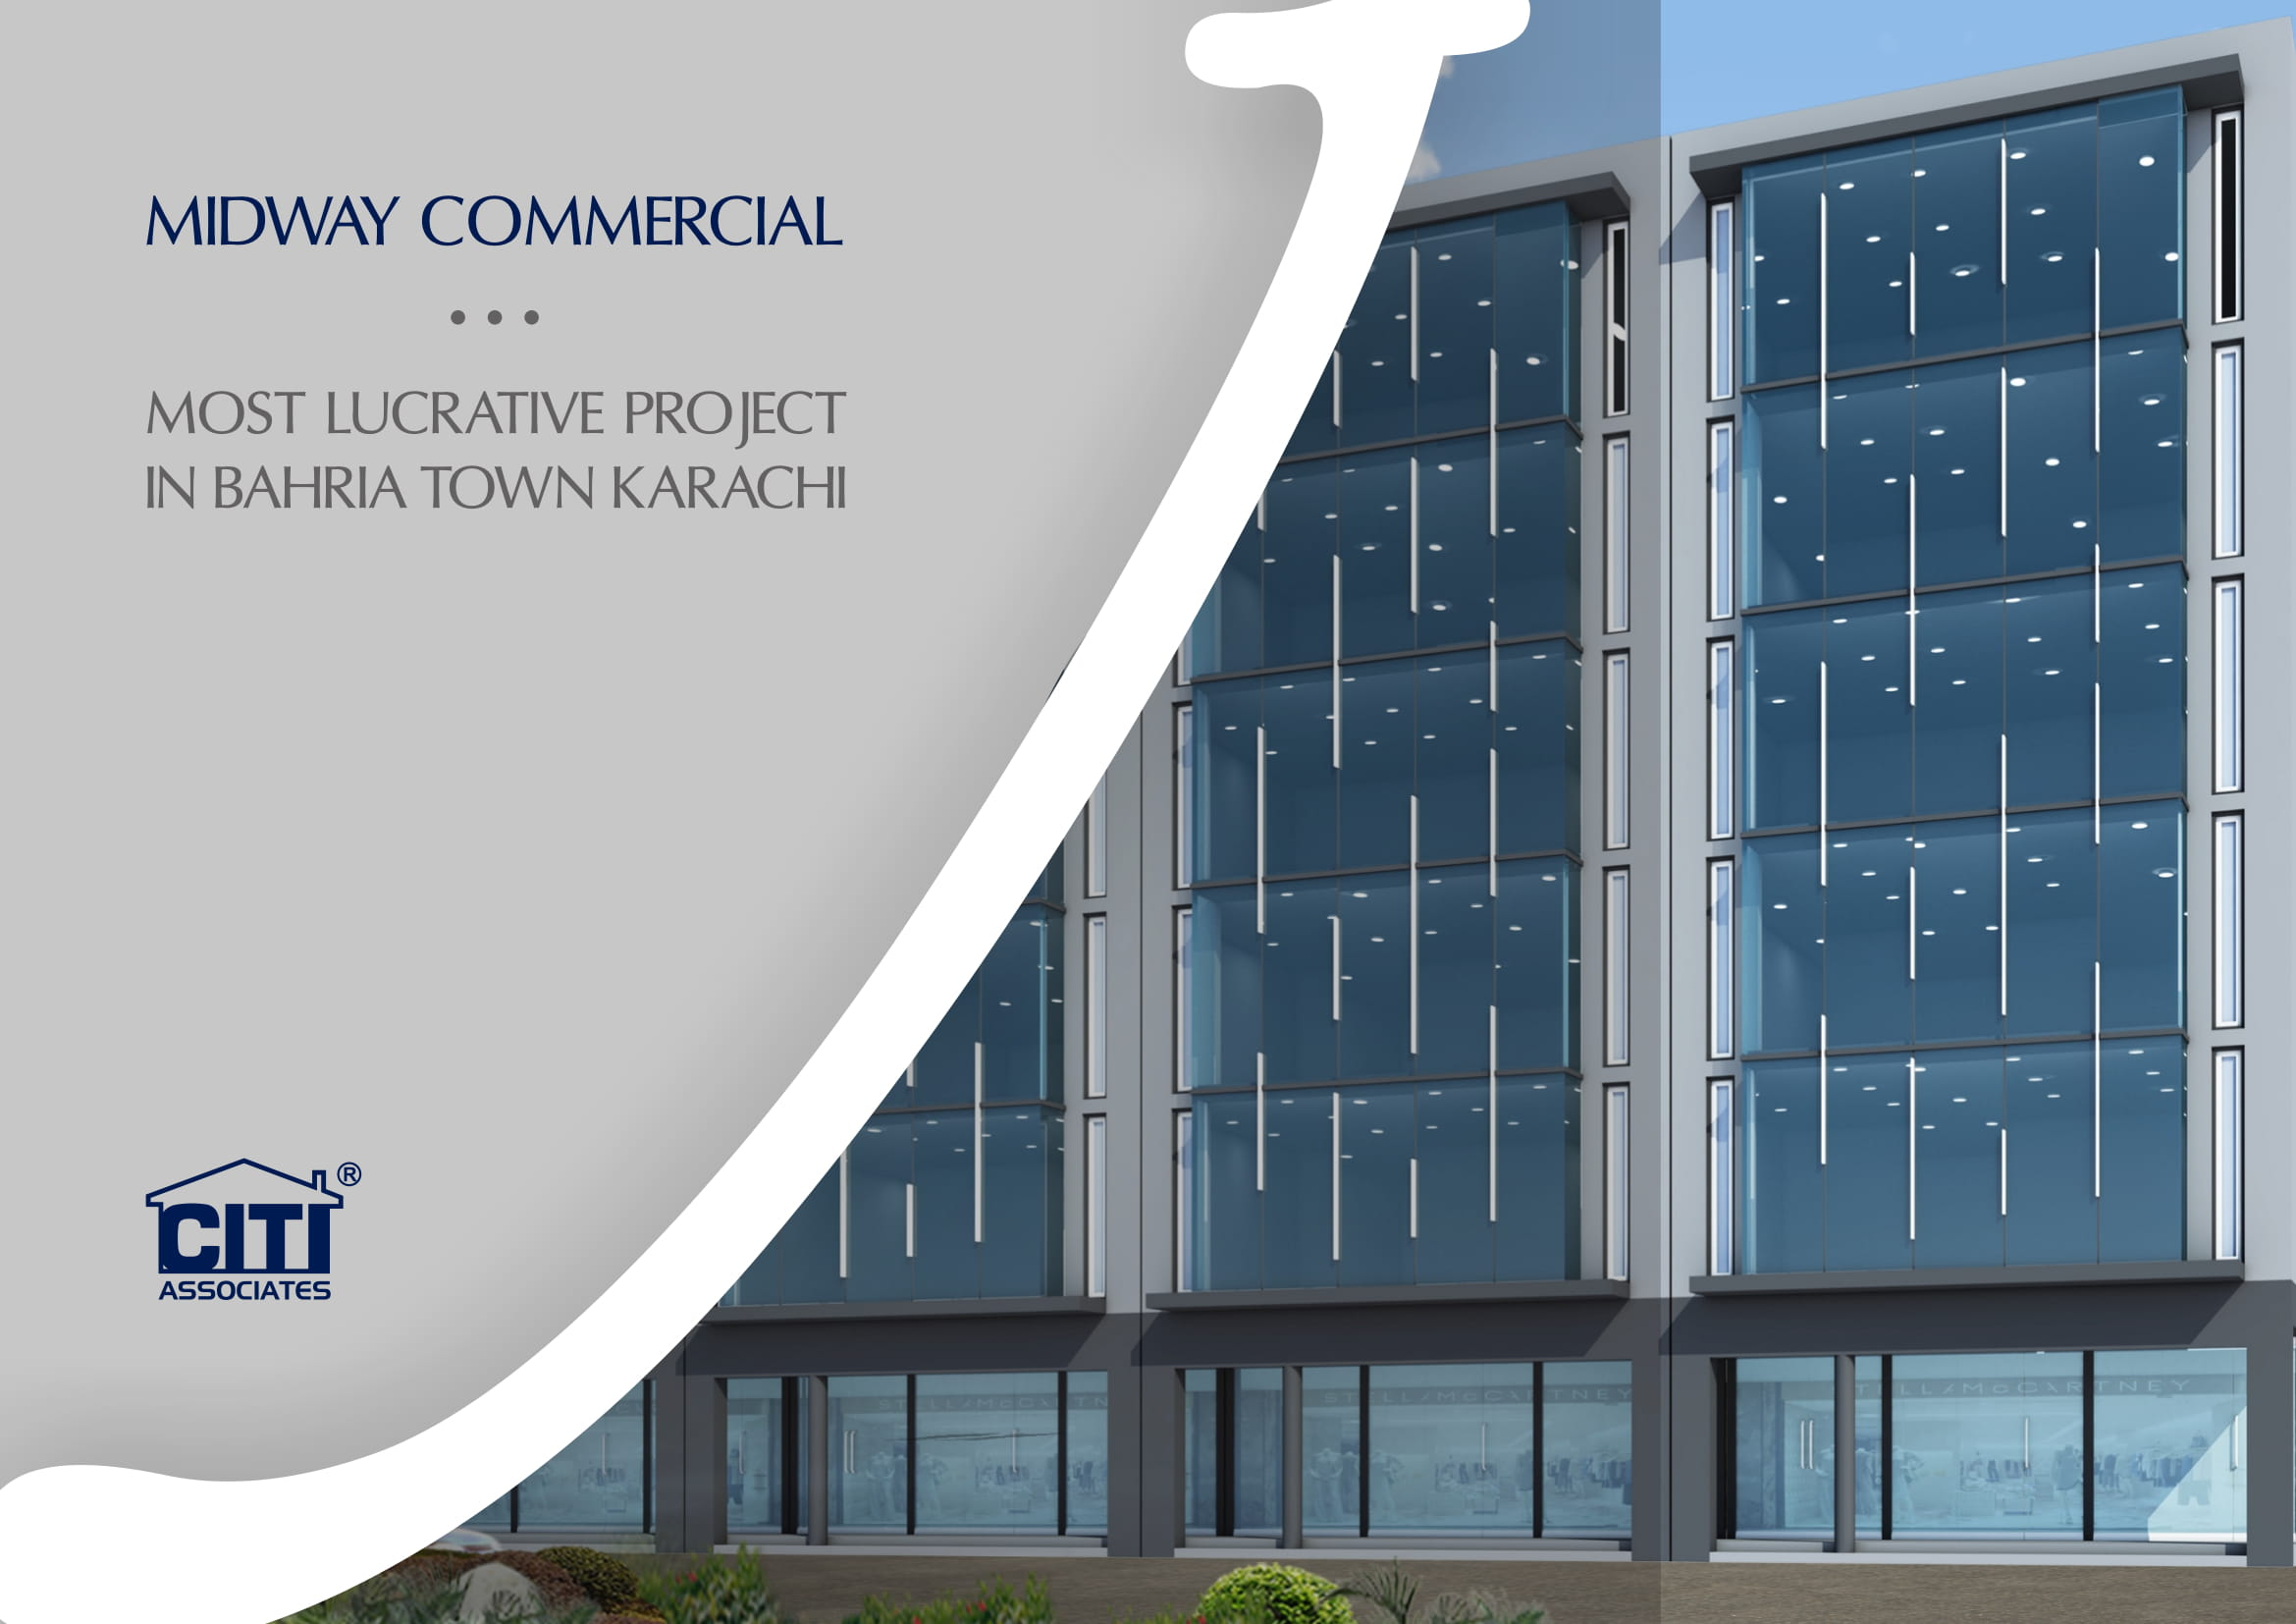 CITI Associates Launches Jakvani Midway Tower – Bahria Town Karachi (3)